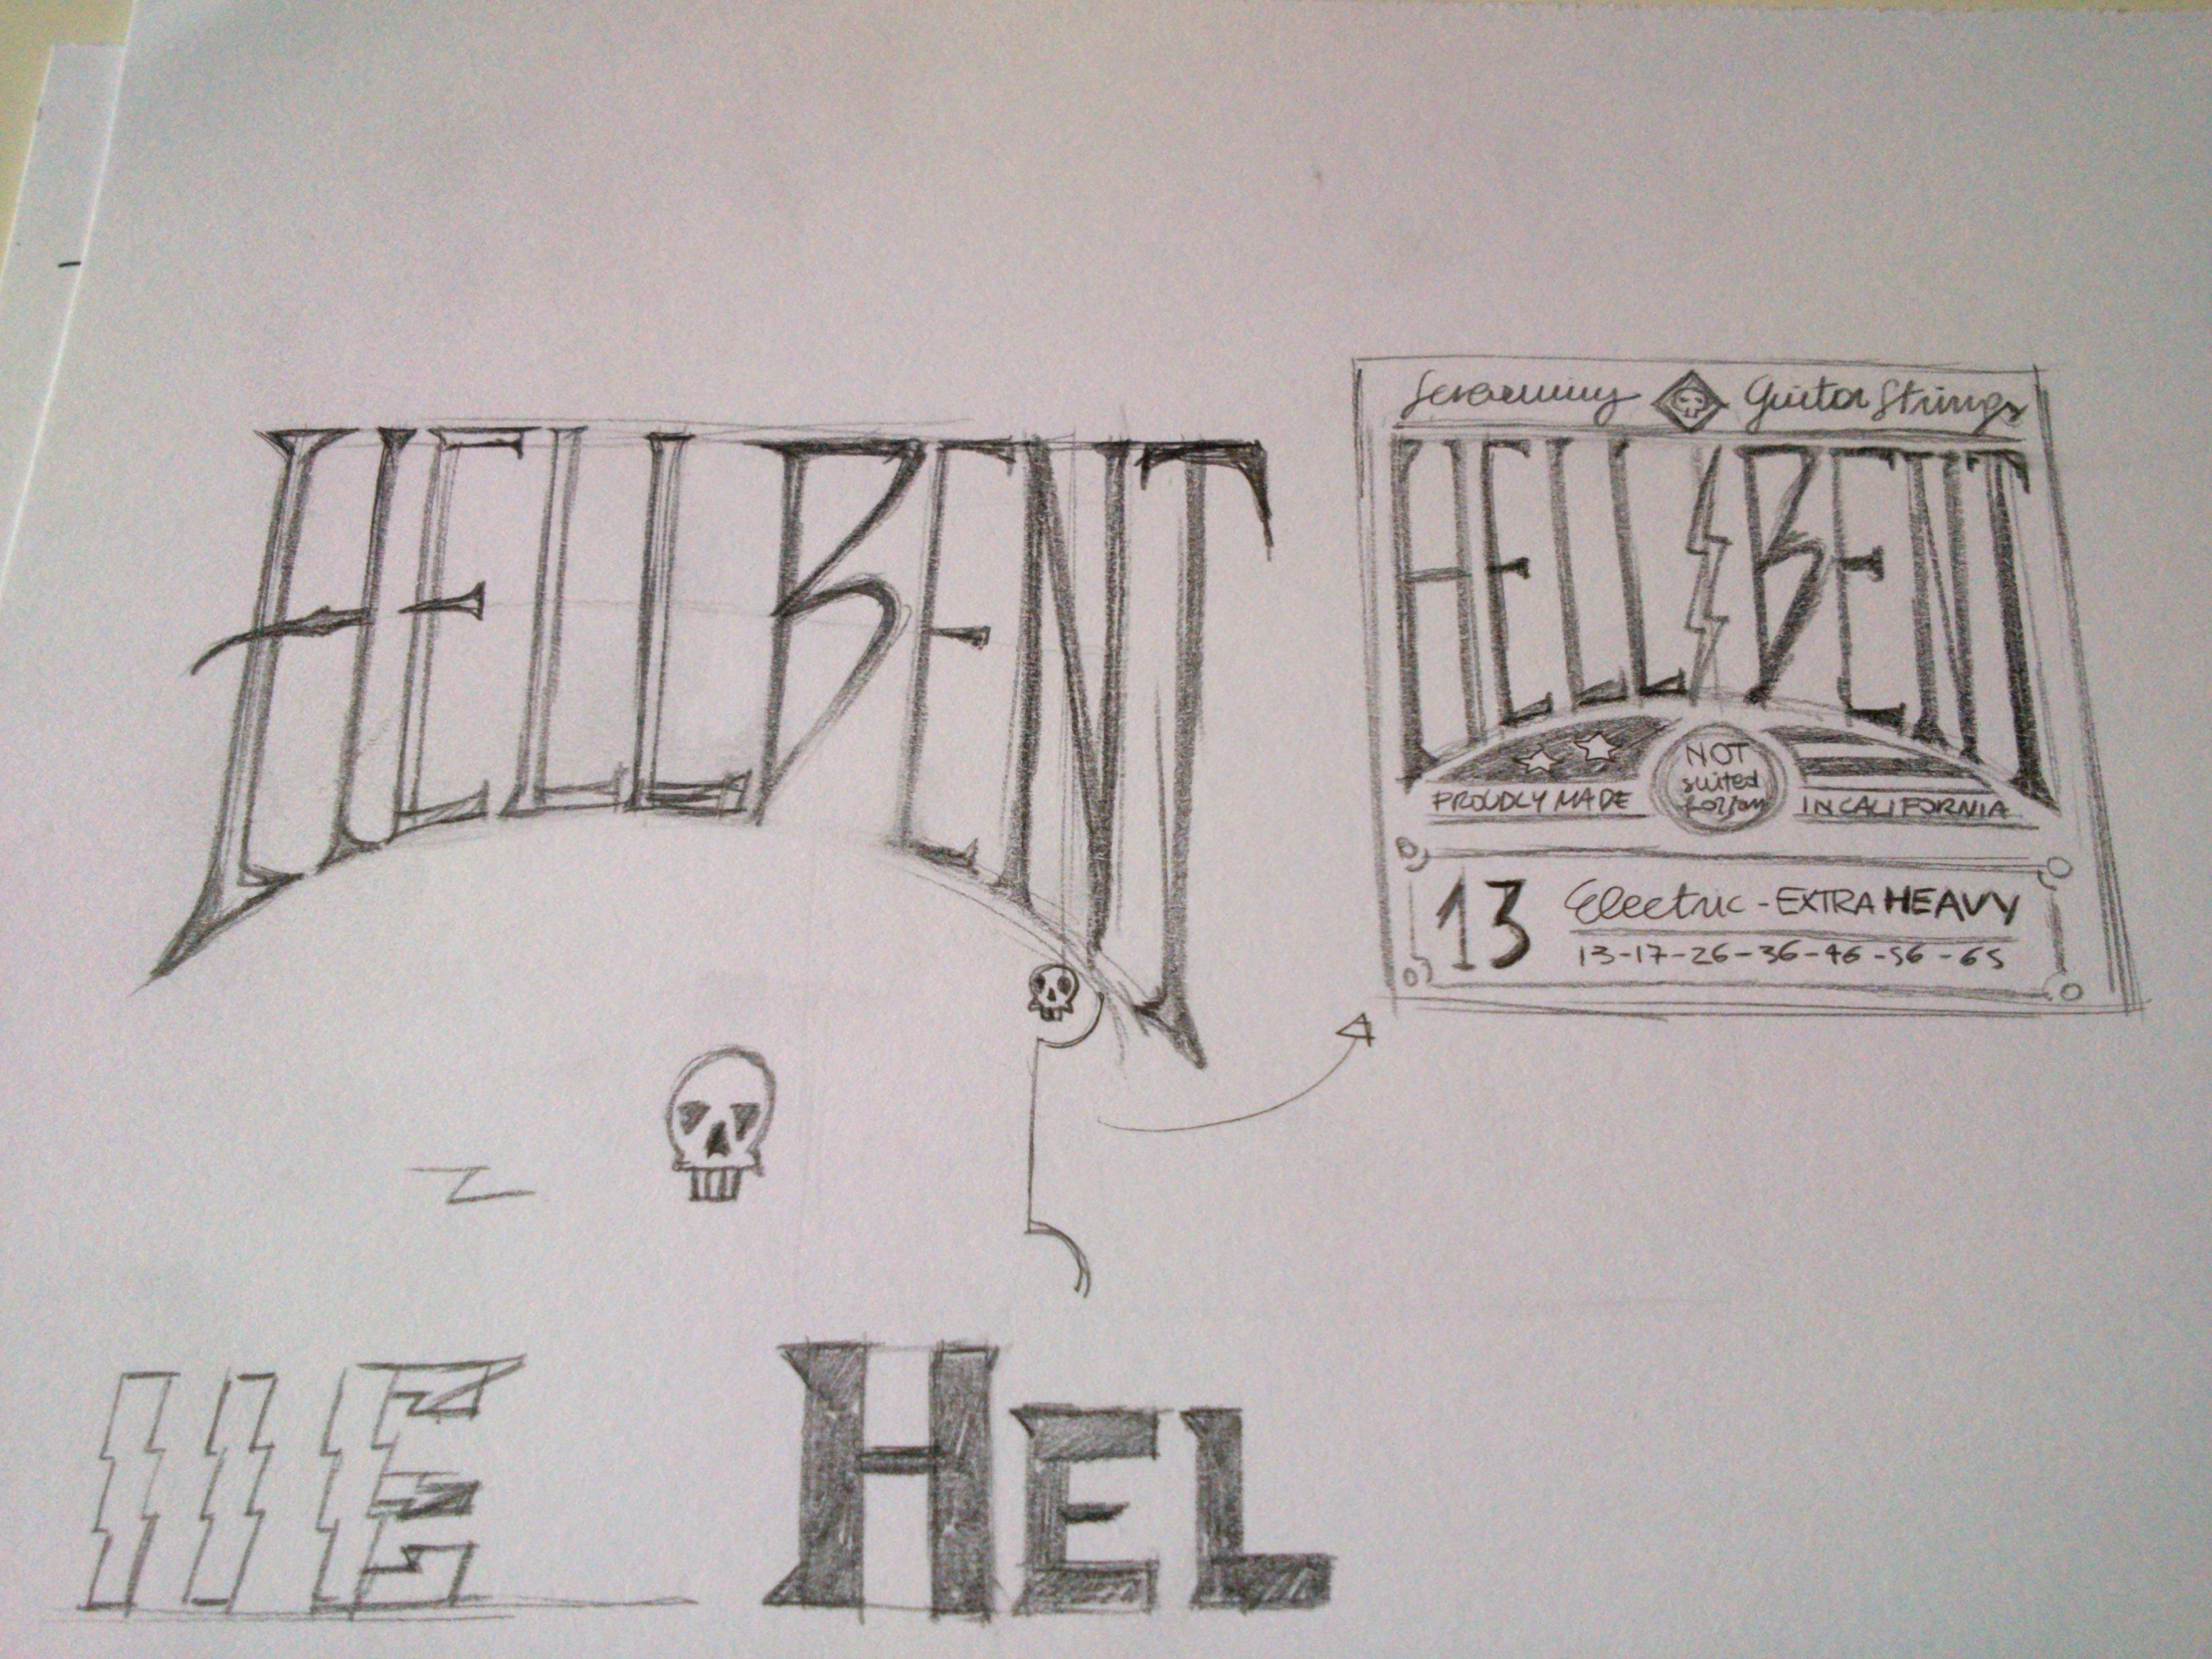 HELL BENT - GUITAR STRINGS - image 2 - student project